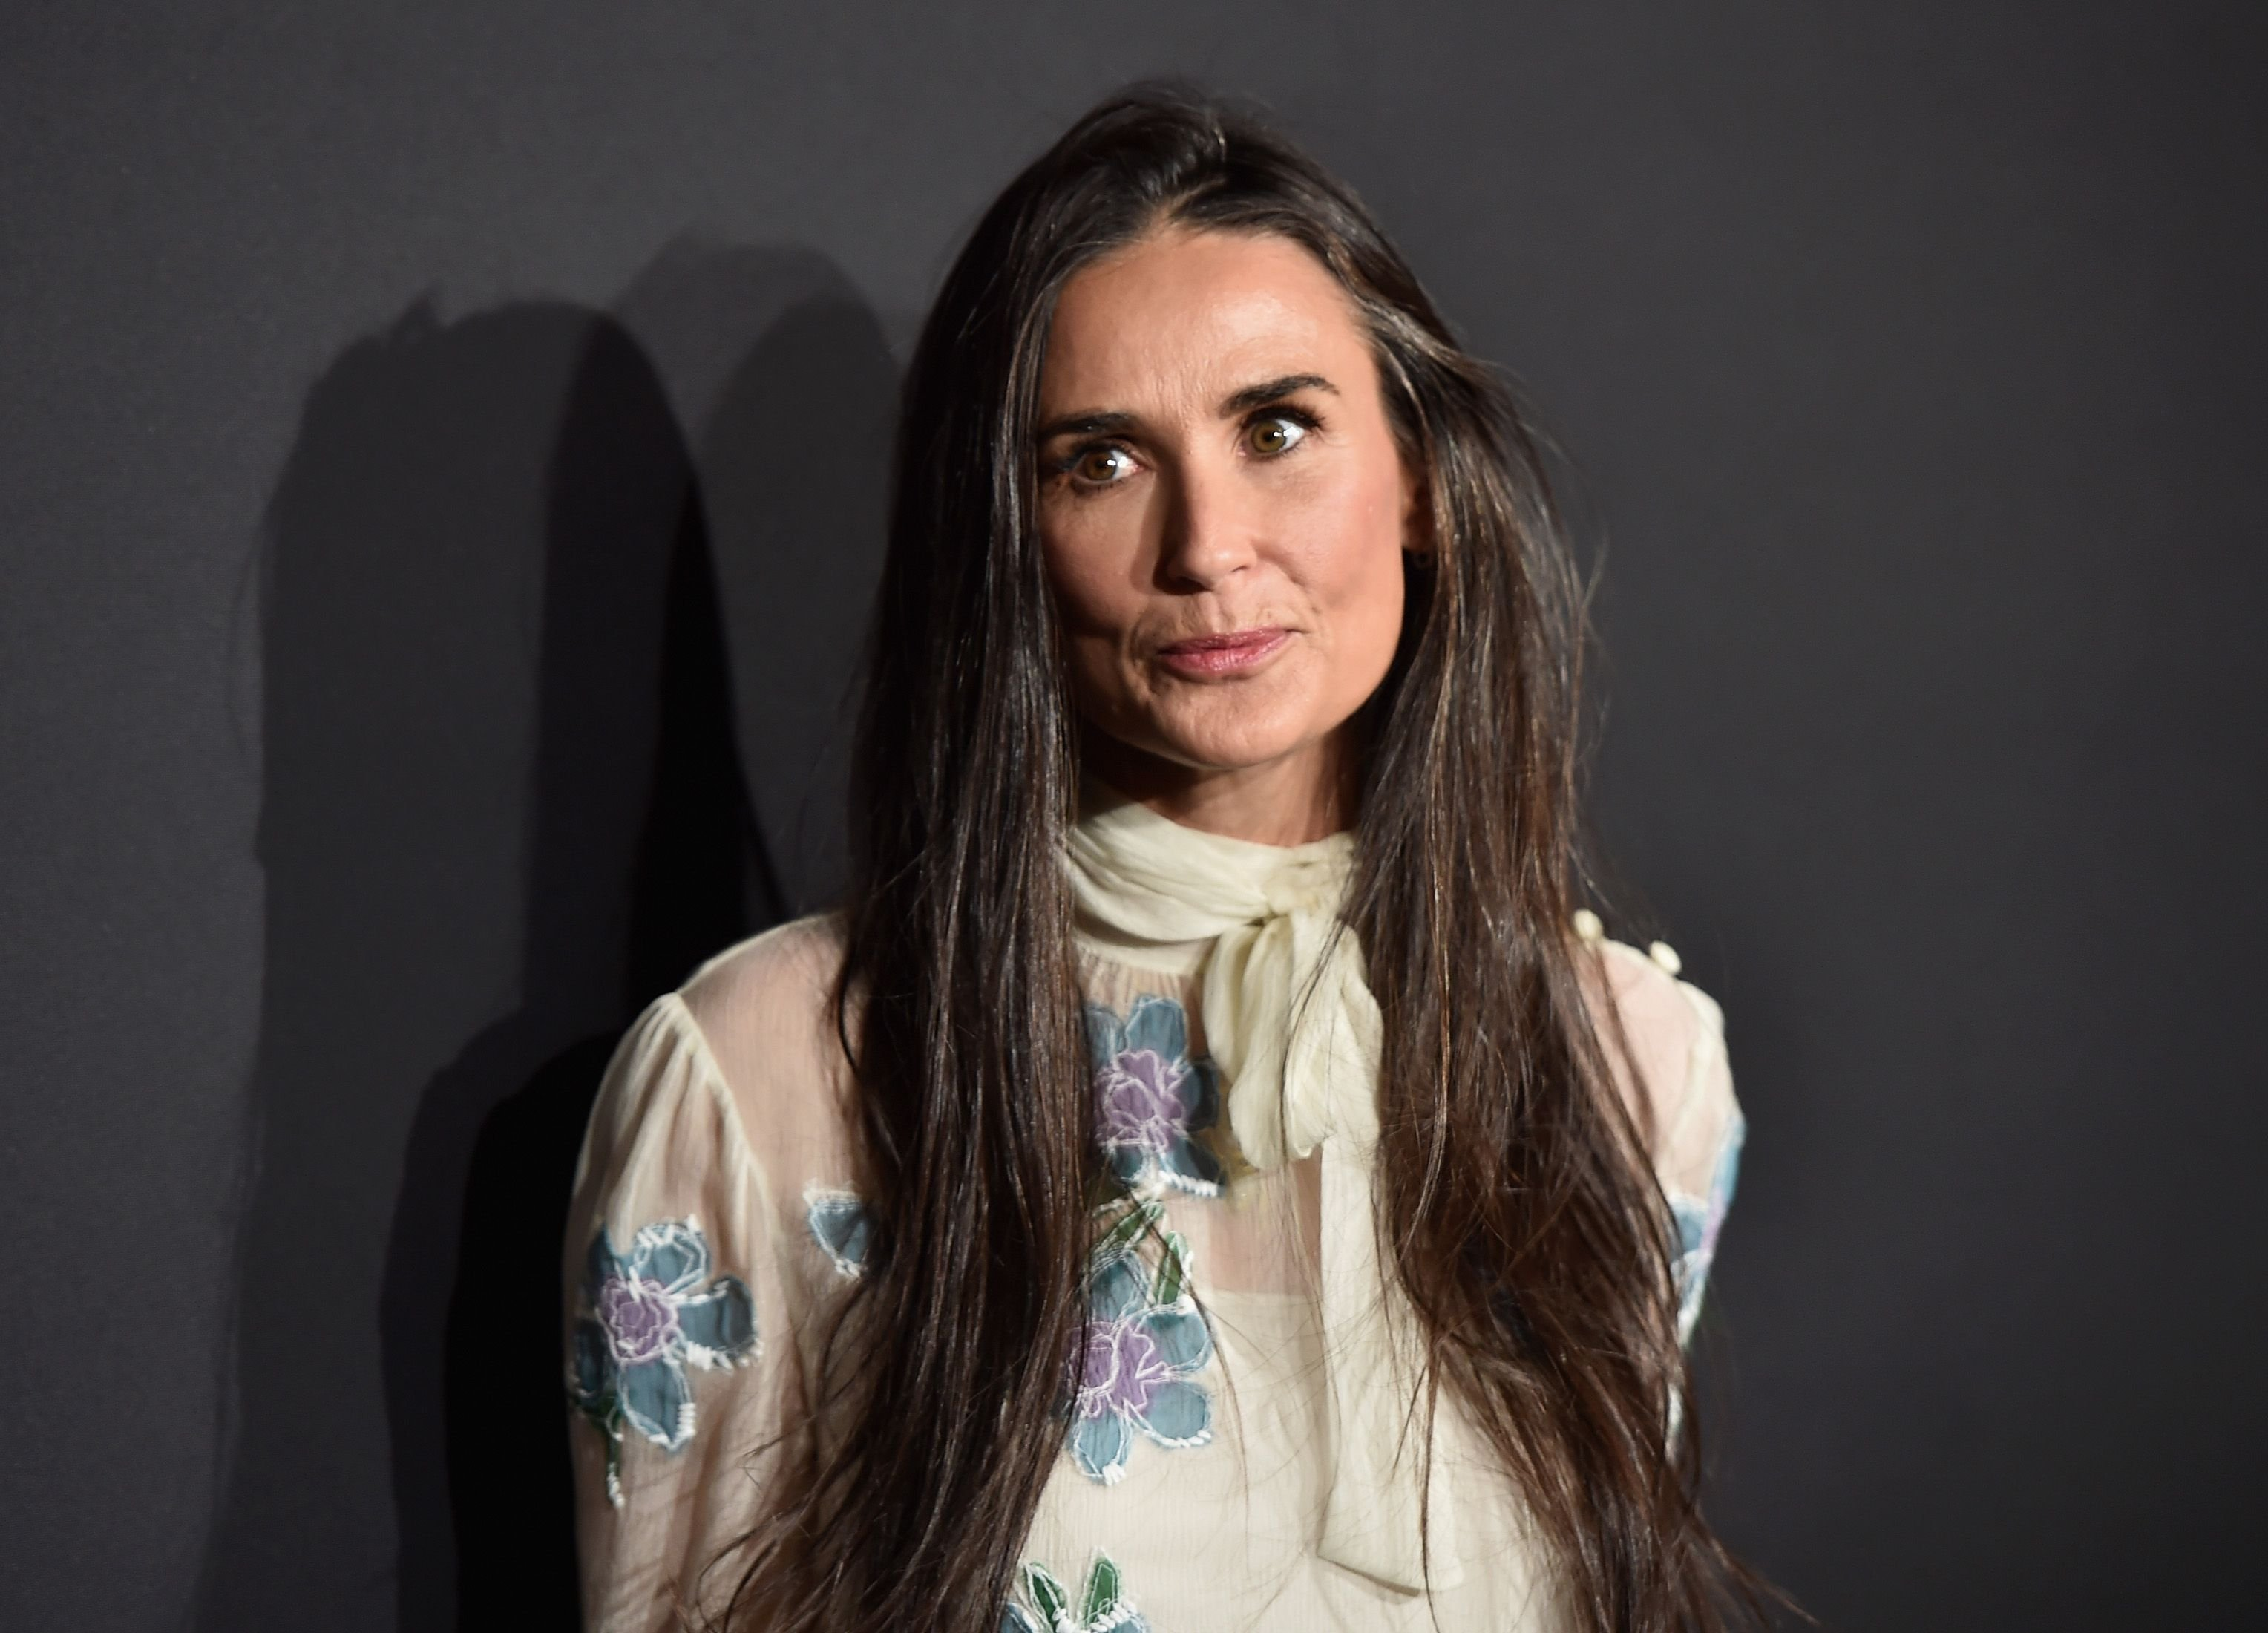 Actress Demi Moore at Prada Presents 'Past Forward' by David O. Russell premiere at Hauser Wirth & Schimmel on November 15, 2016 | Photo: Getty Images